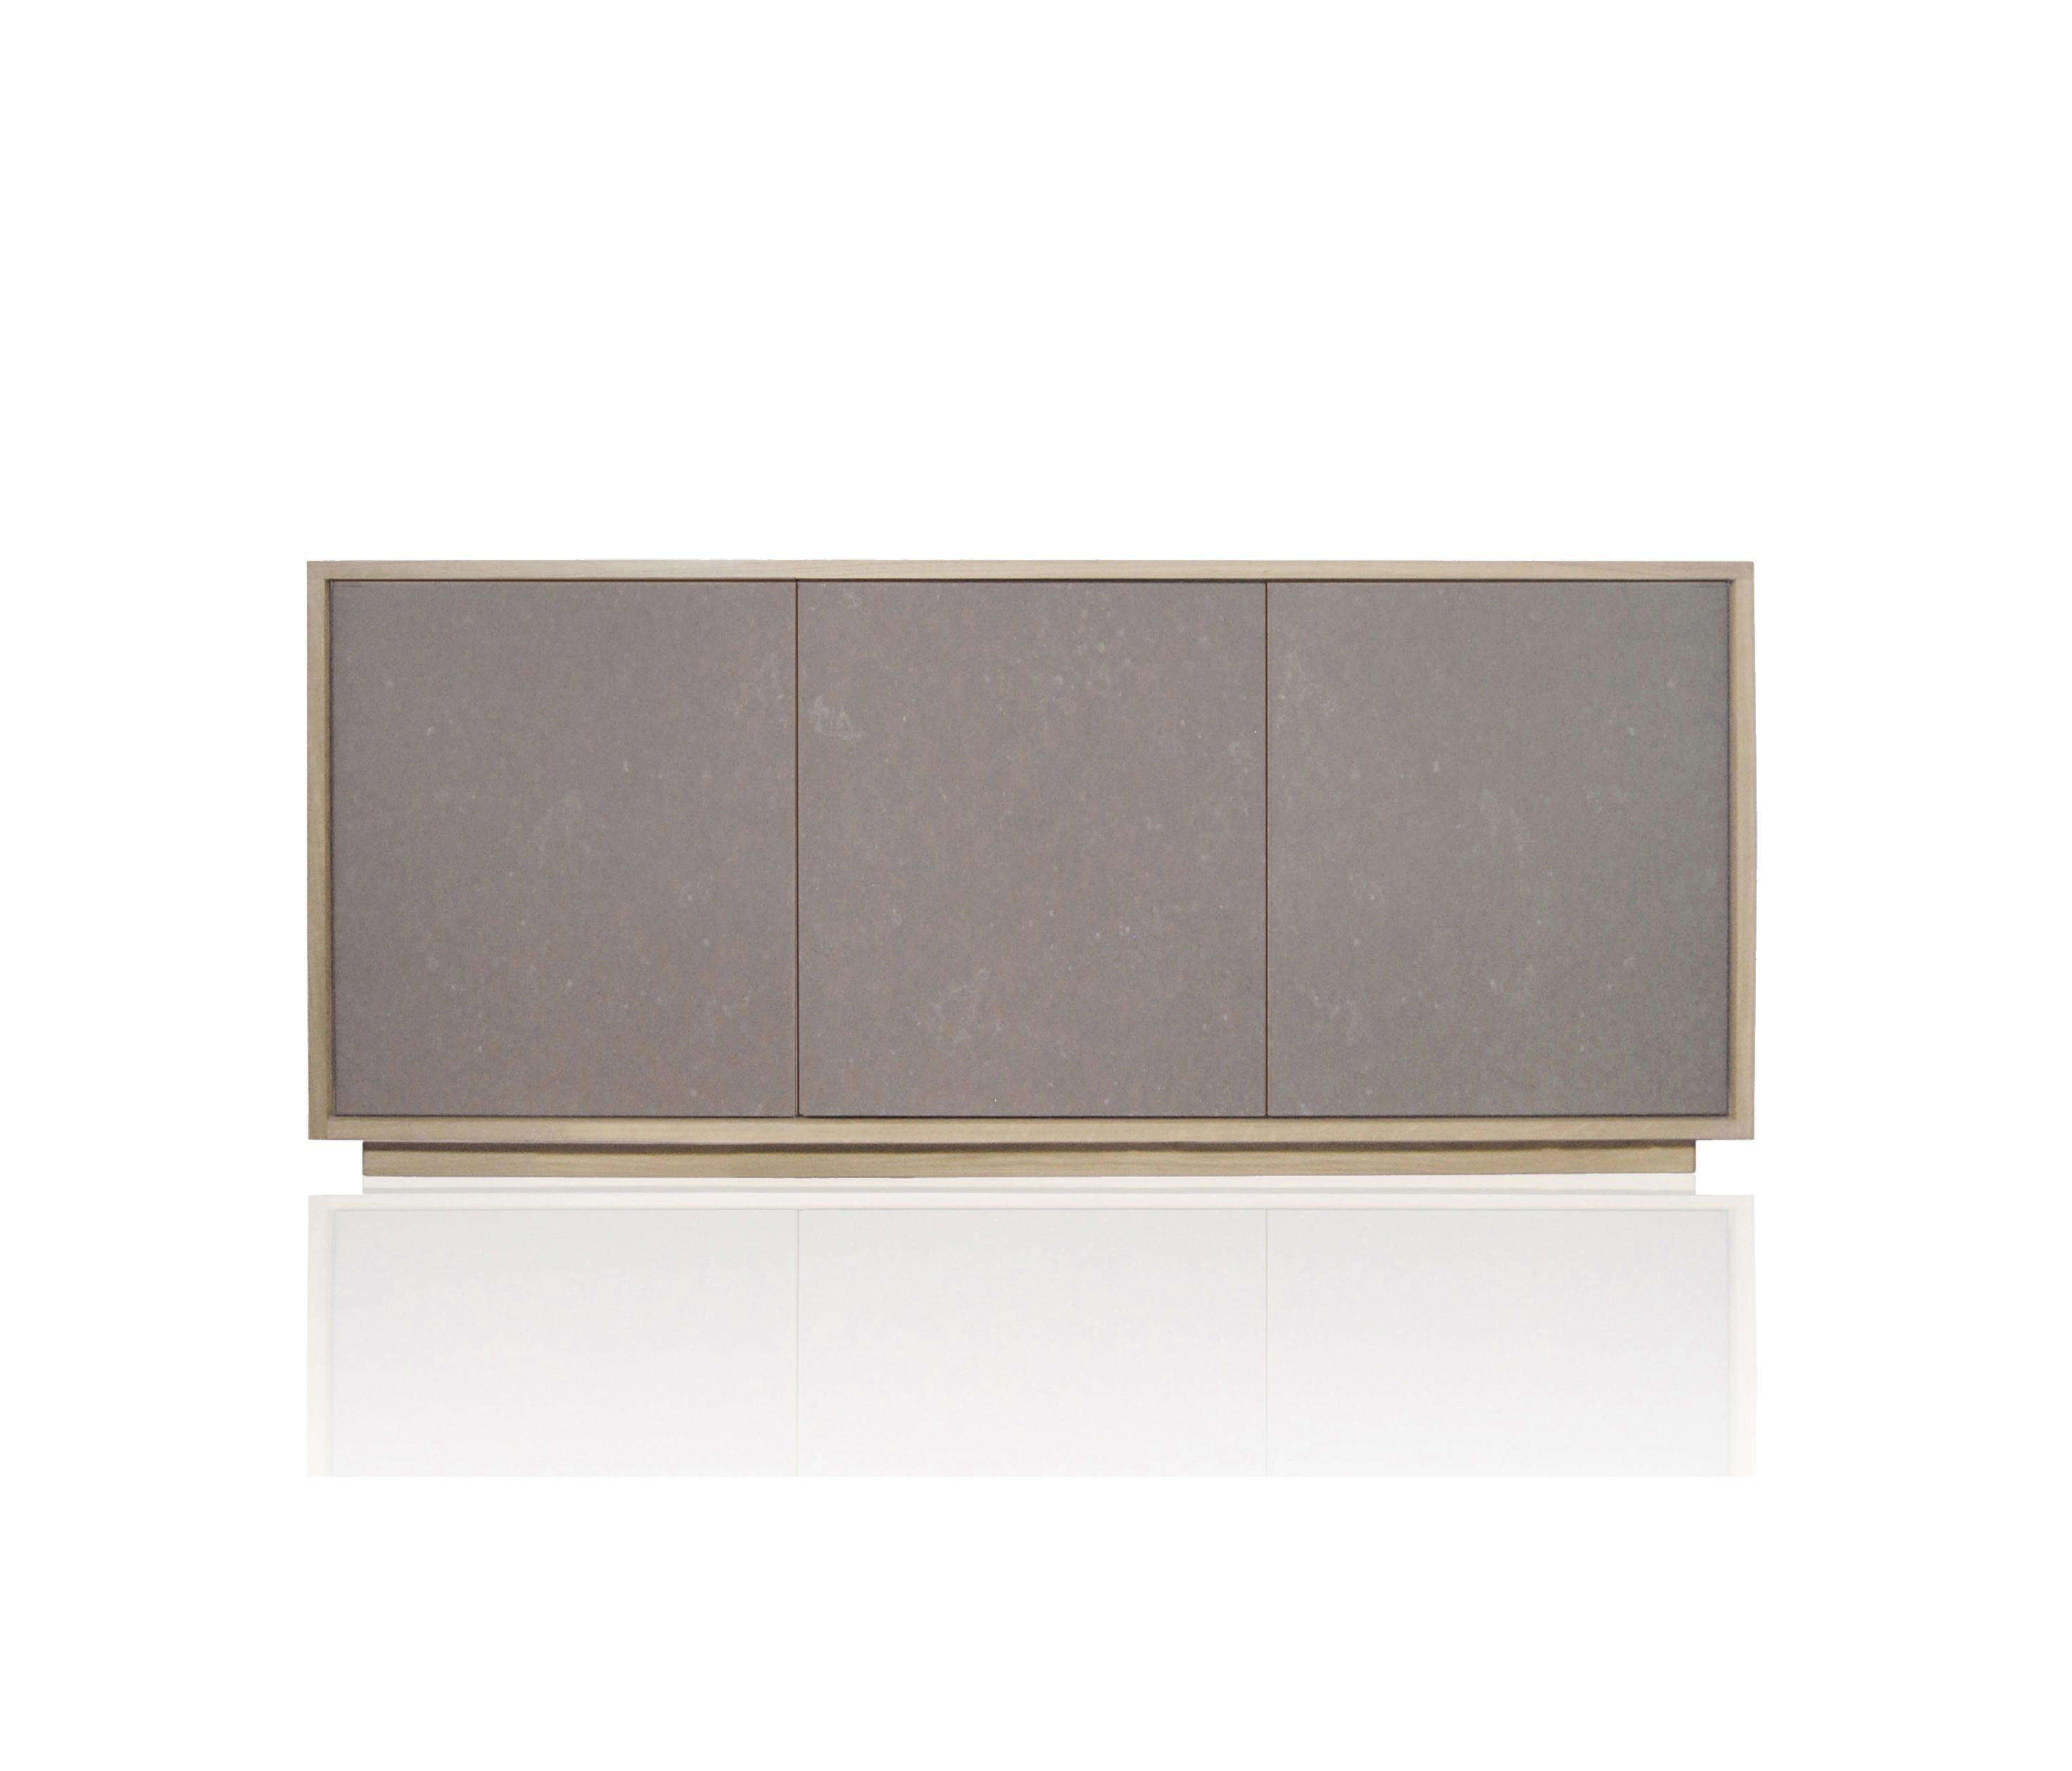 Basic Sideboard 3 Doors Designer Sideboards From Expormim All Information High Resolution Images Cads Catalogues Contact Information